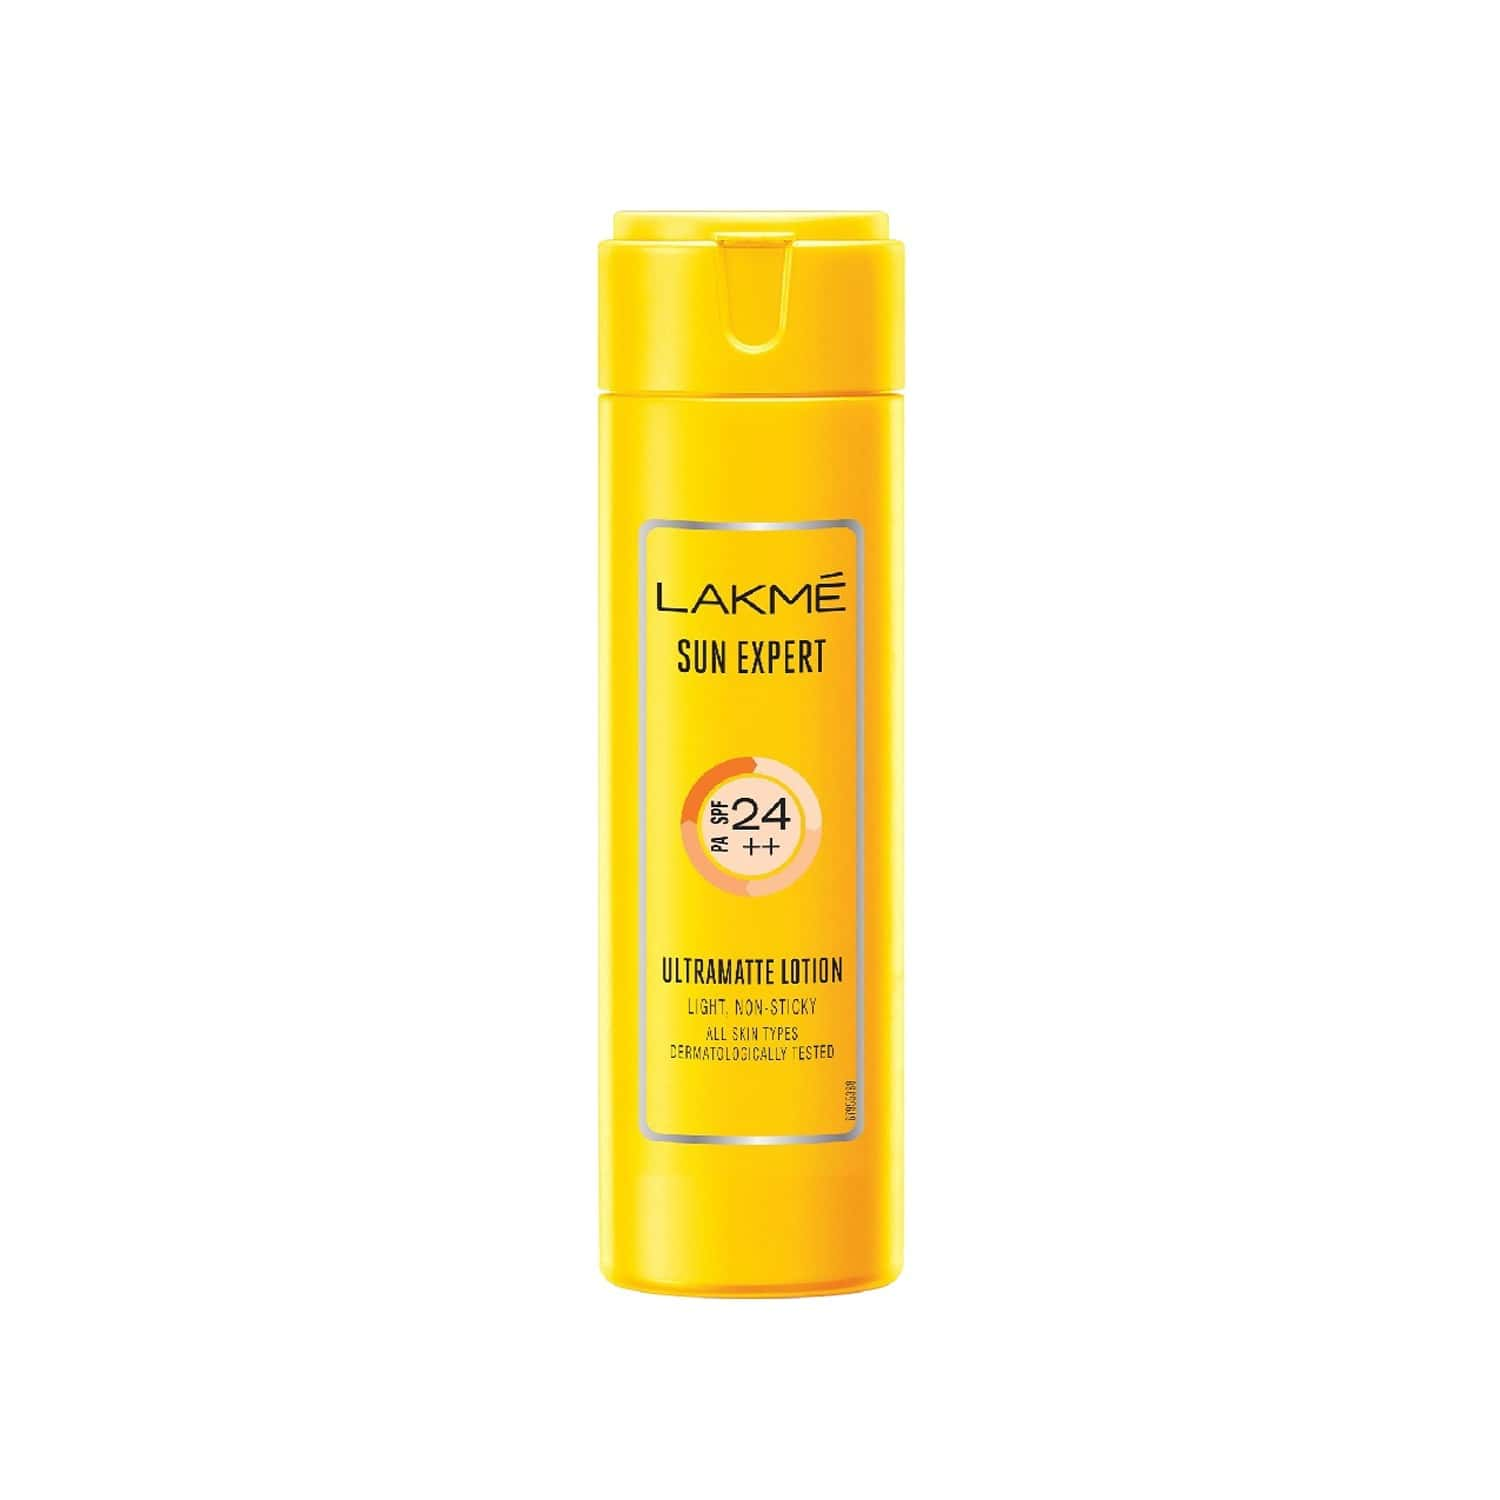 Lakme Sun Expert  Sunscreen Spf 24 Pa++ Uv Lotion Bottle Of 120 Ml